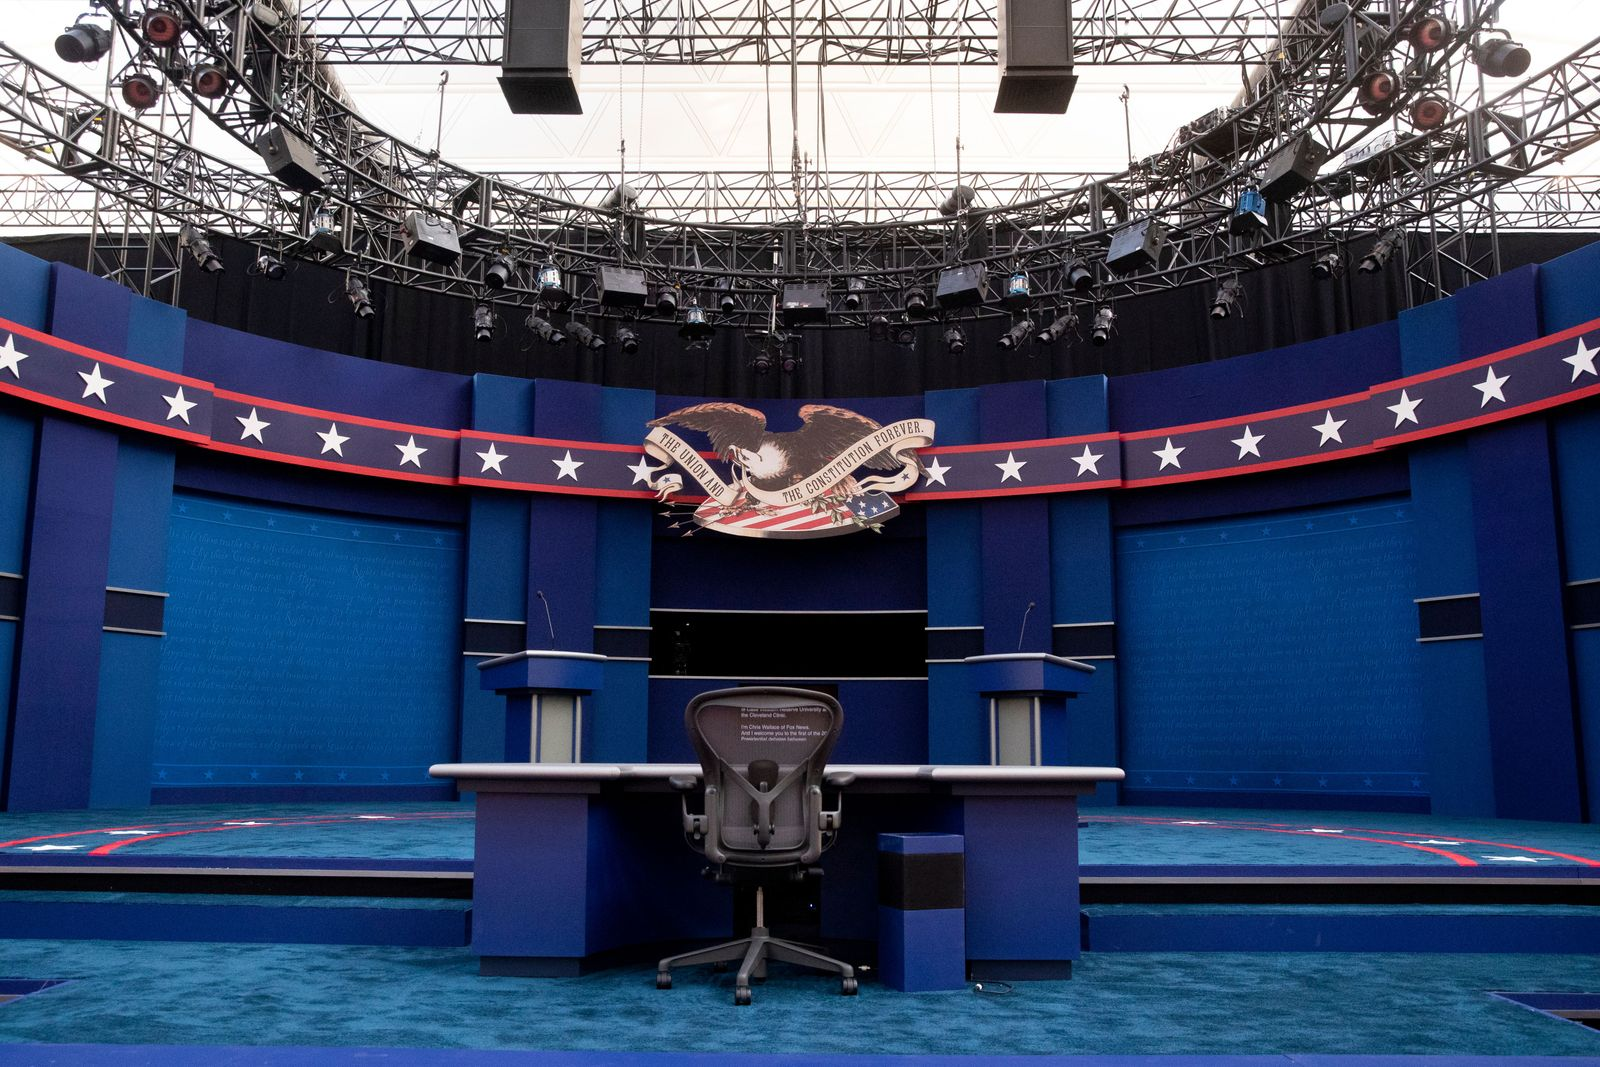 First 2020 presidential election debate between US President Donald J. Trump and Democratic presidential candidate Joe Biden, Cleveland, USA - 25 Sep 2020